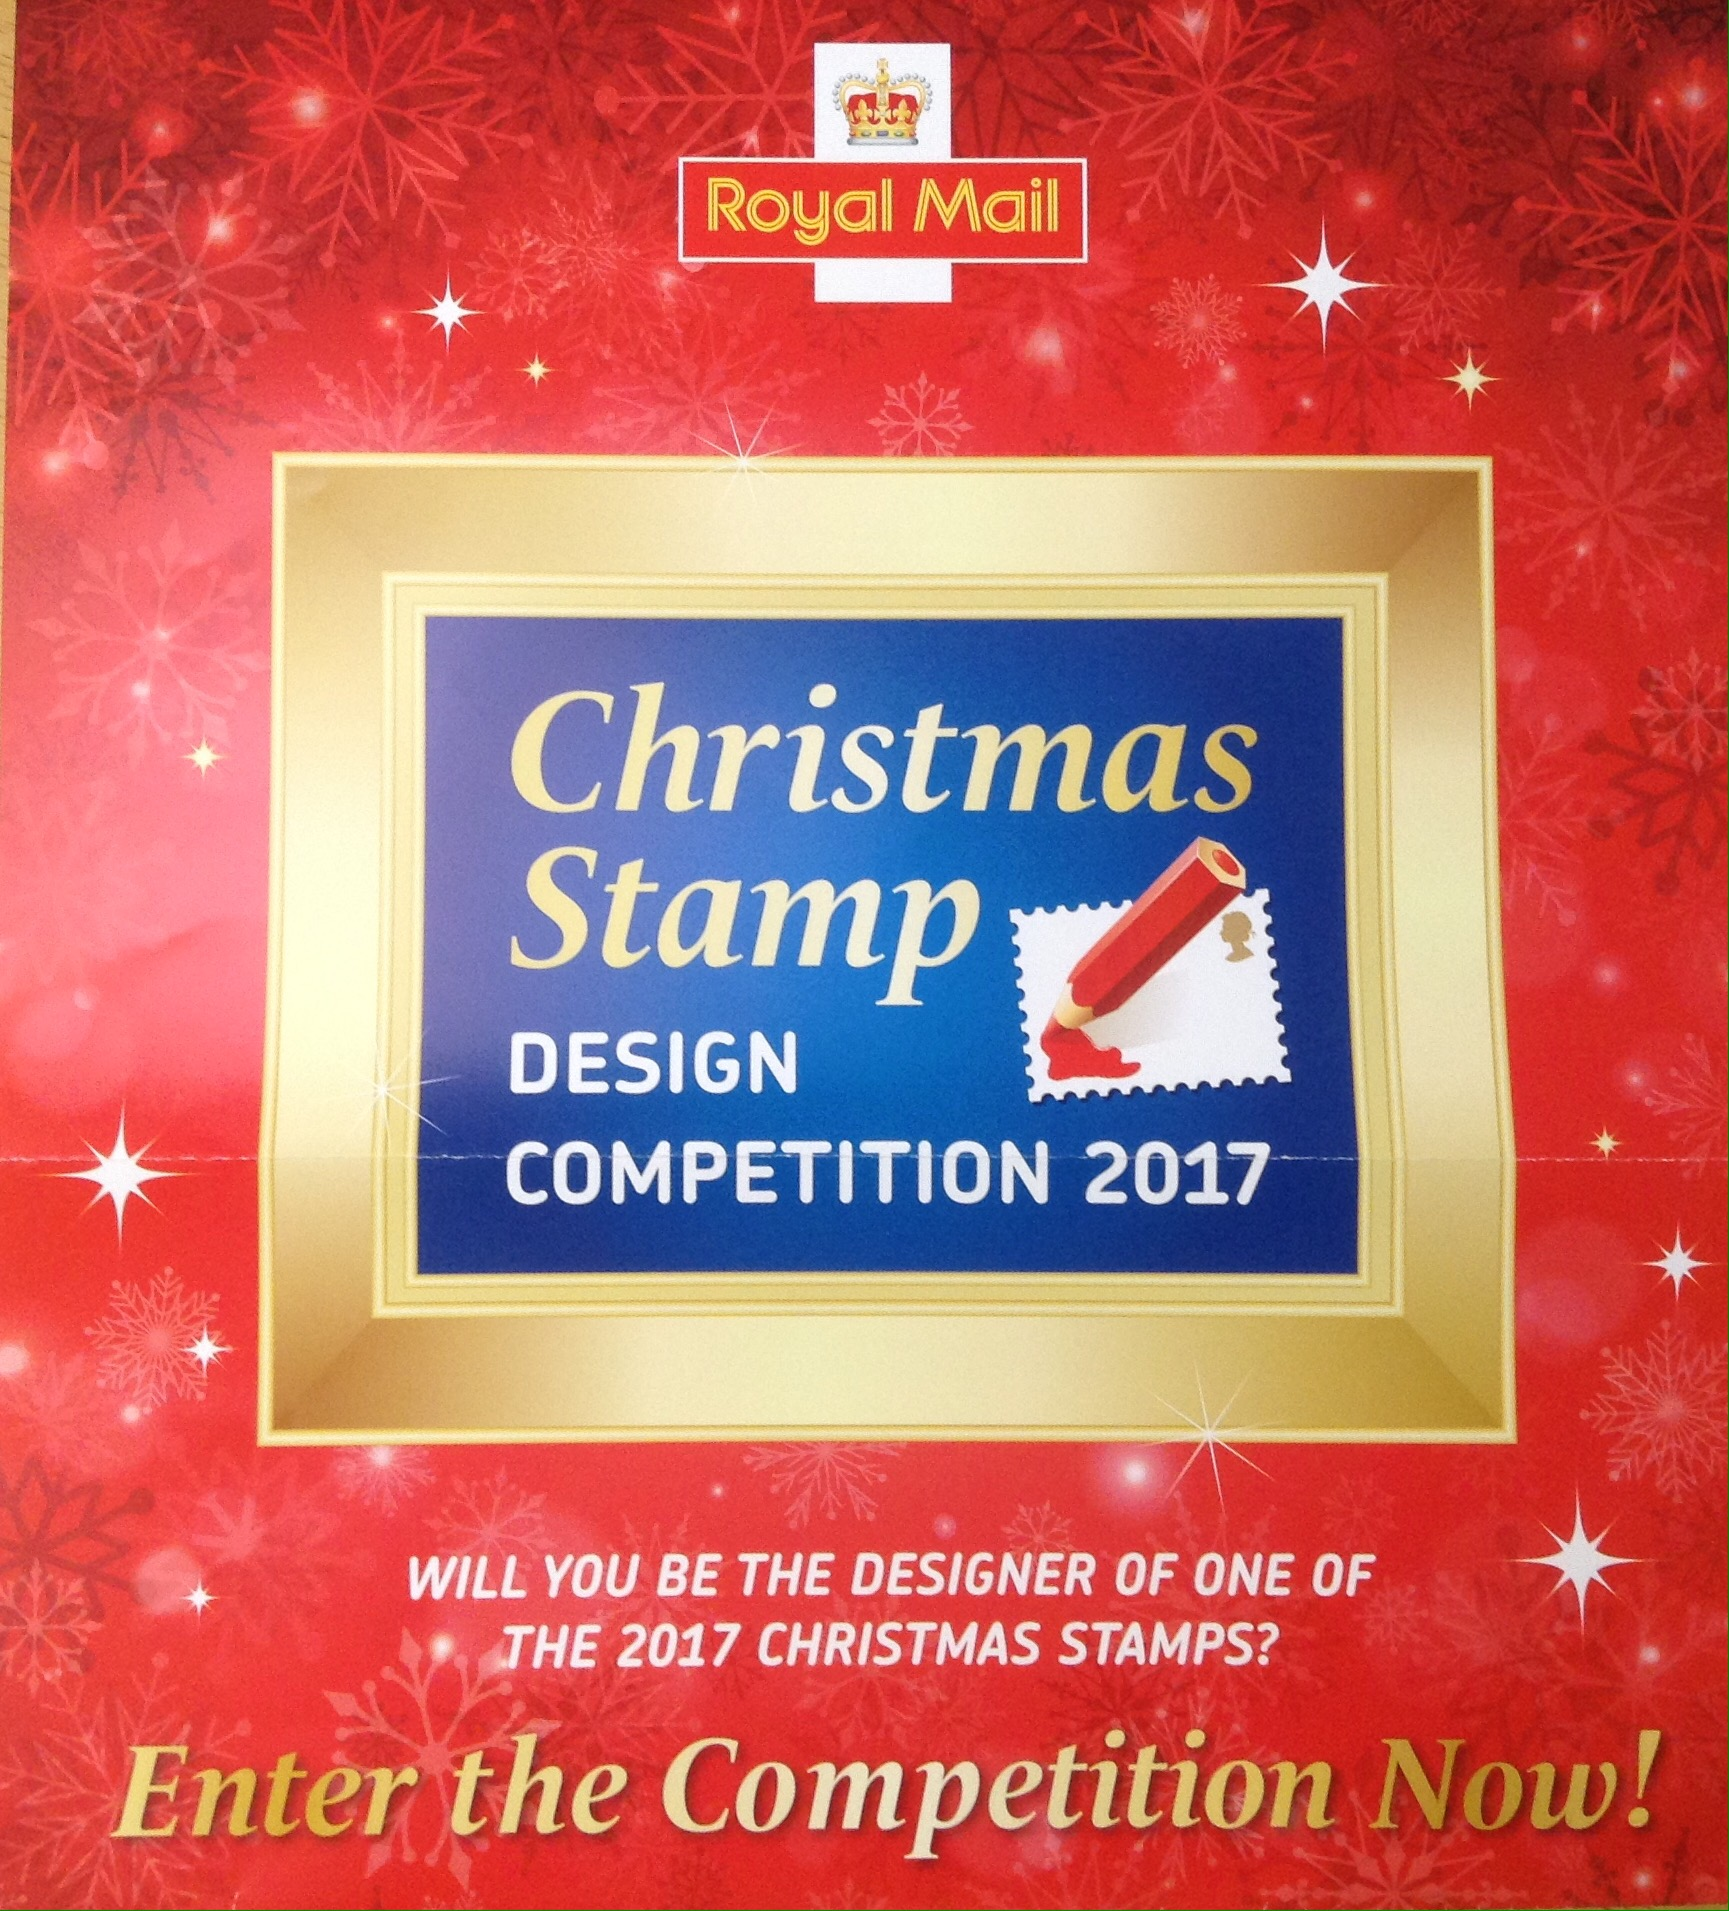 Competition Corner U2013 Christmas Stamp Design 2017 Delves Junior School